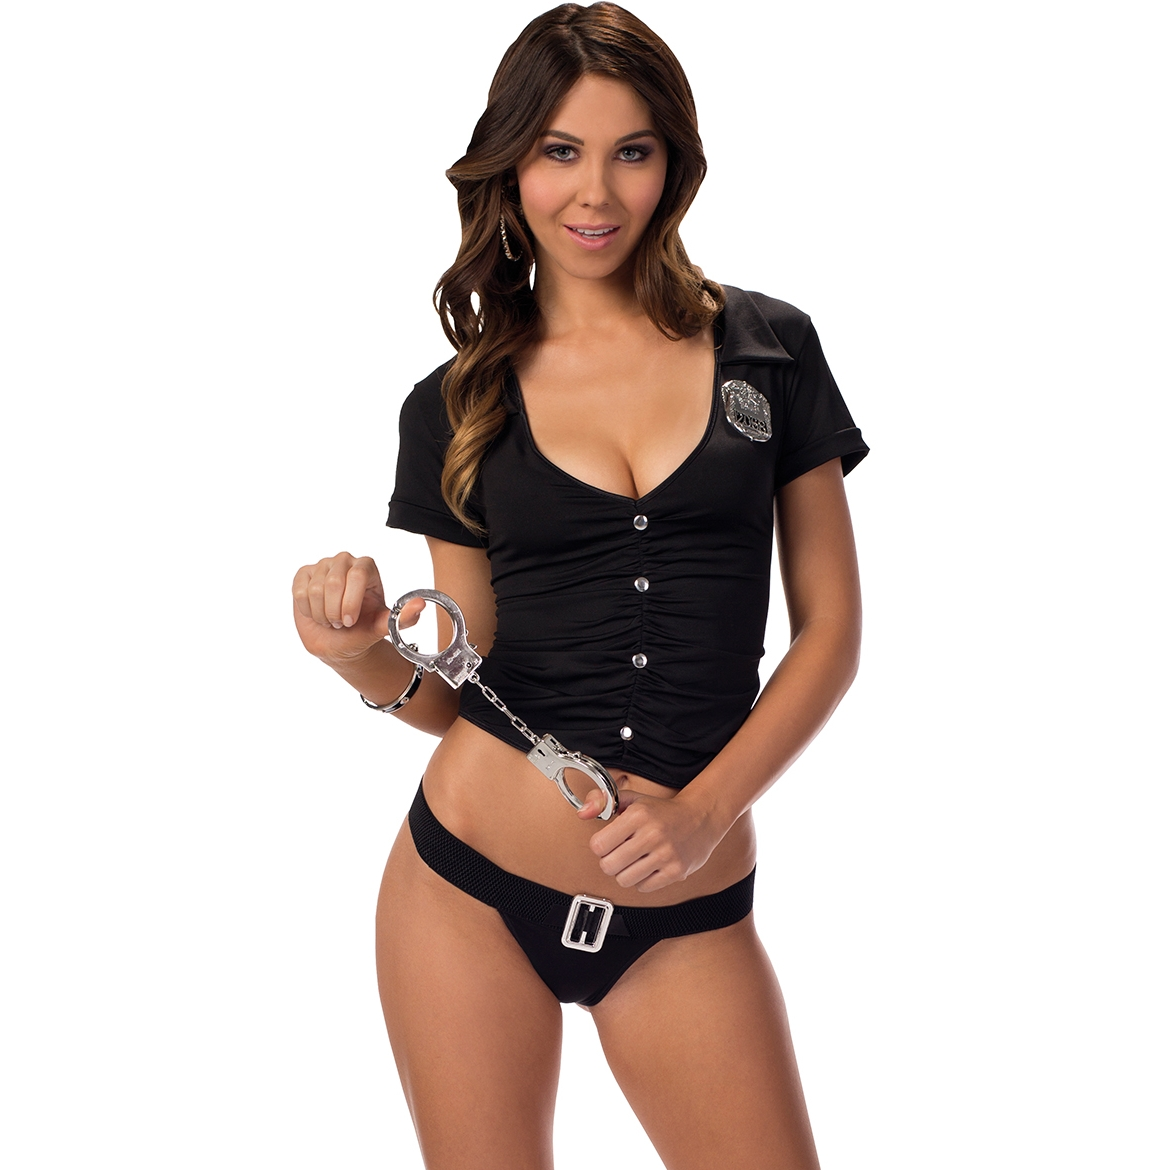 Sexy Officer Bedroom Costume